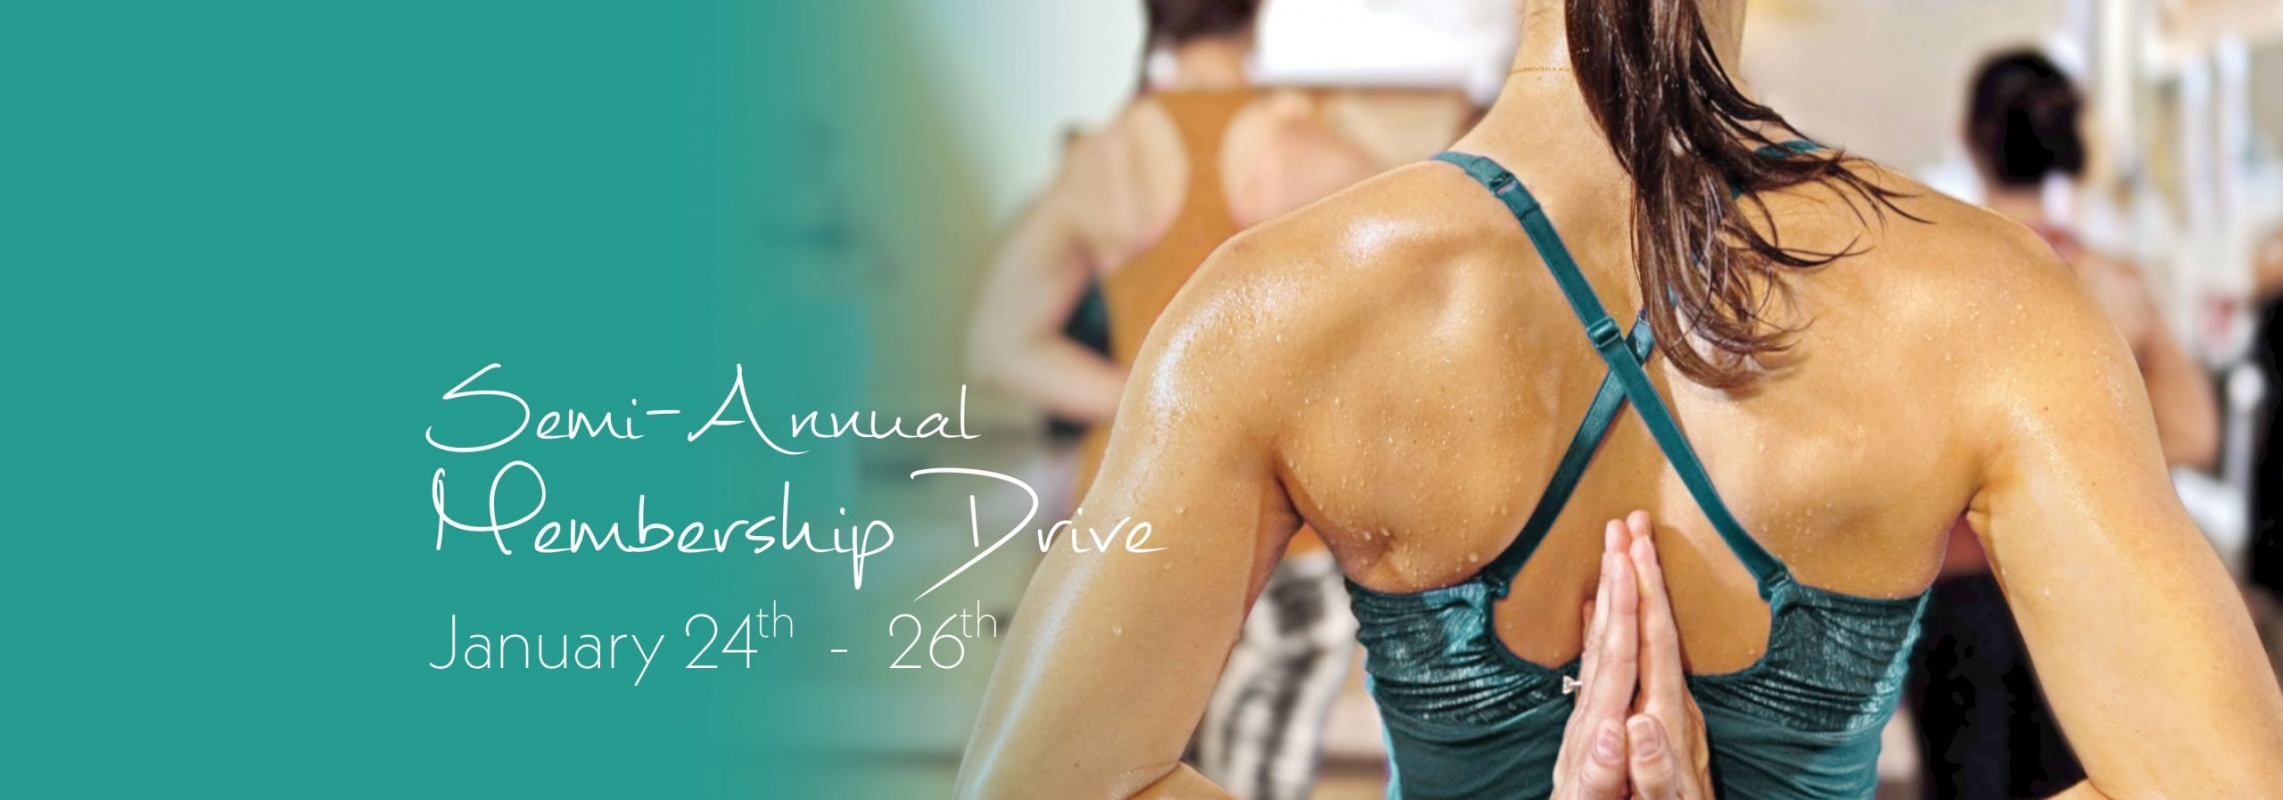 Save during our Semi-Annual Membership Drive